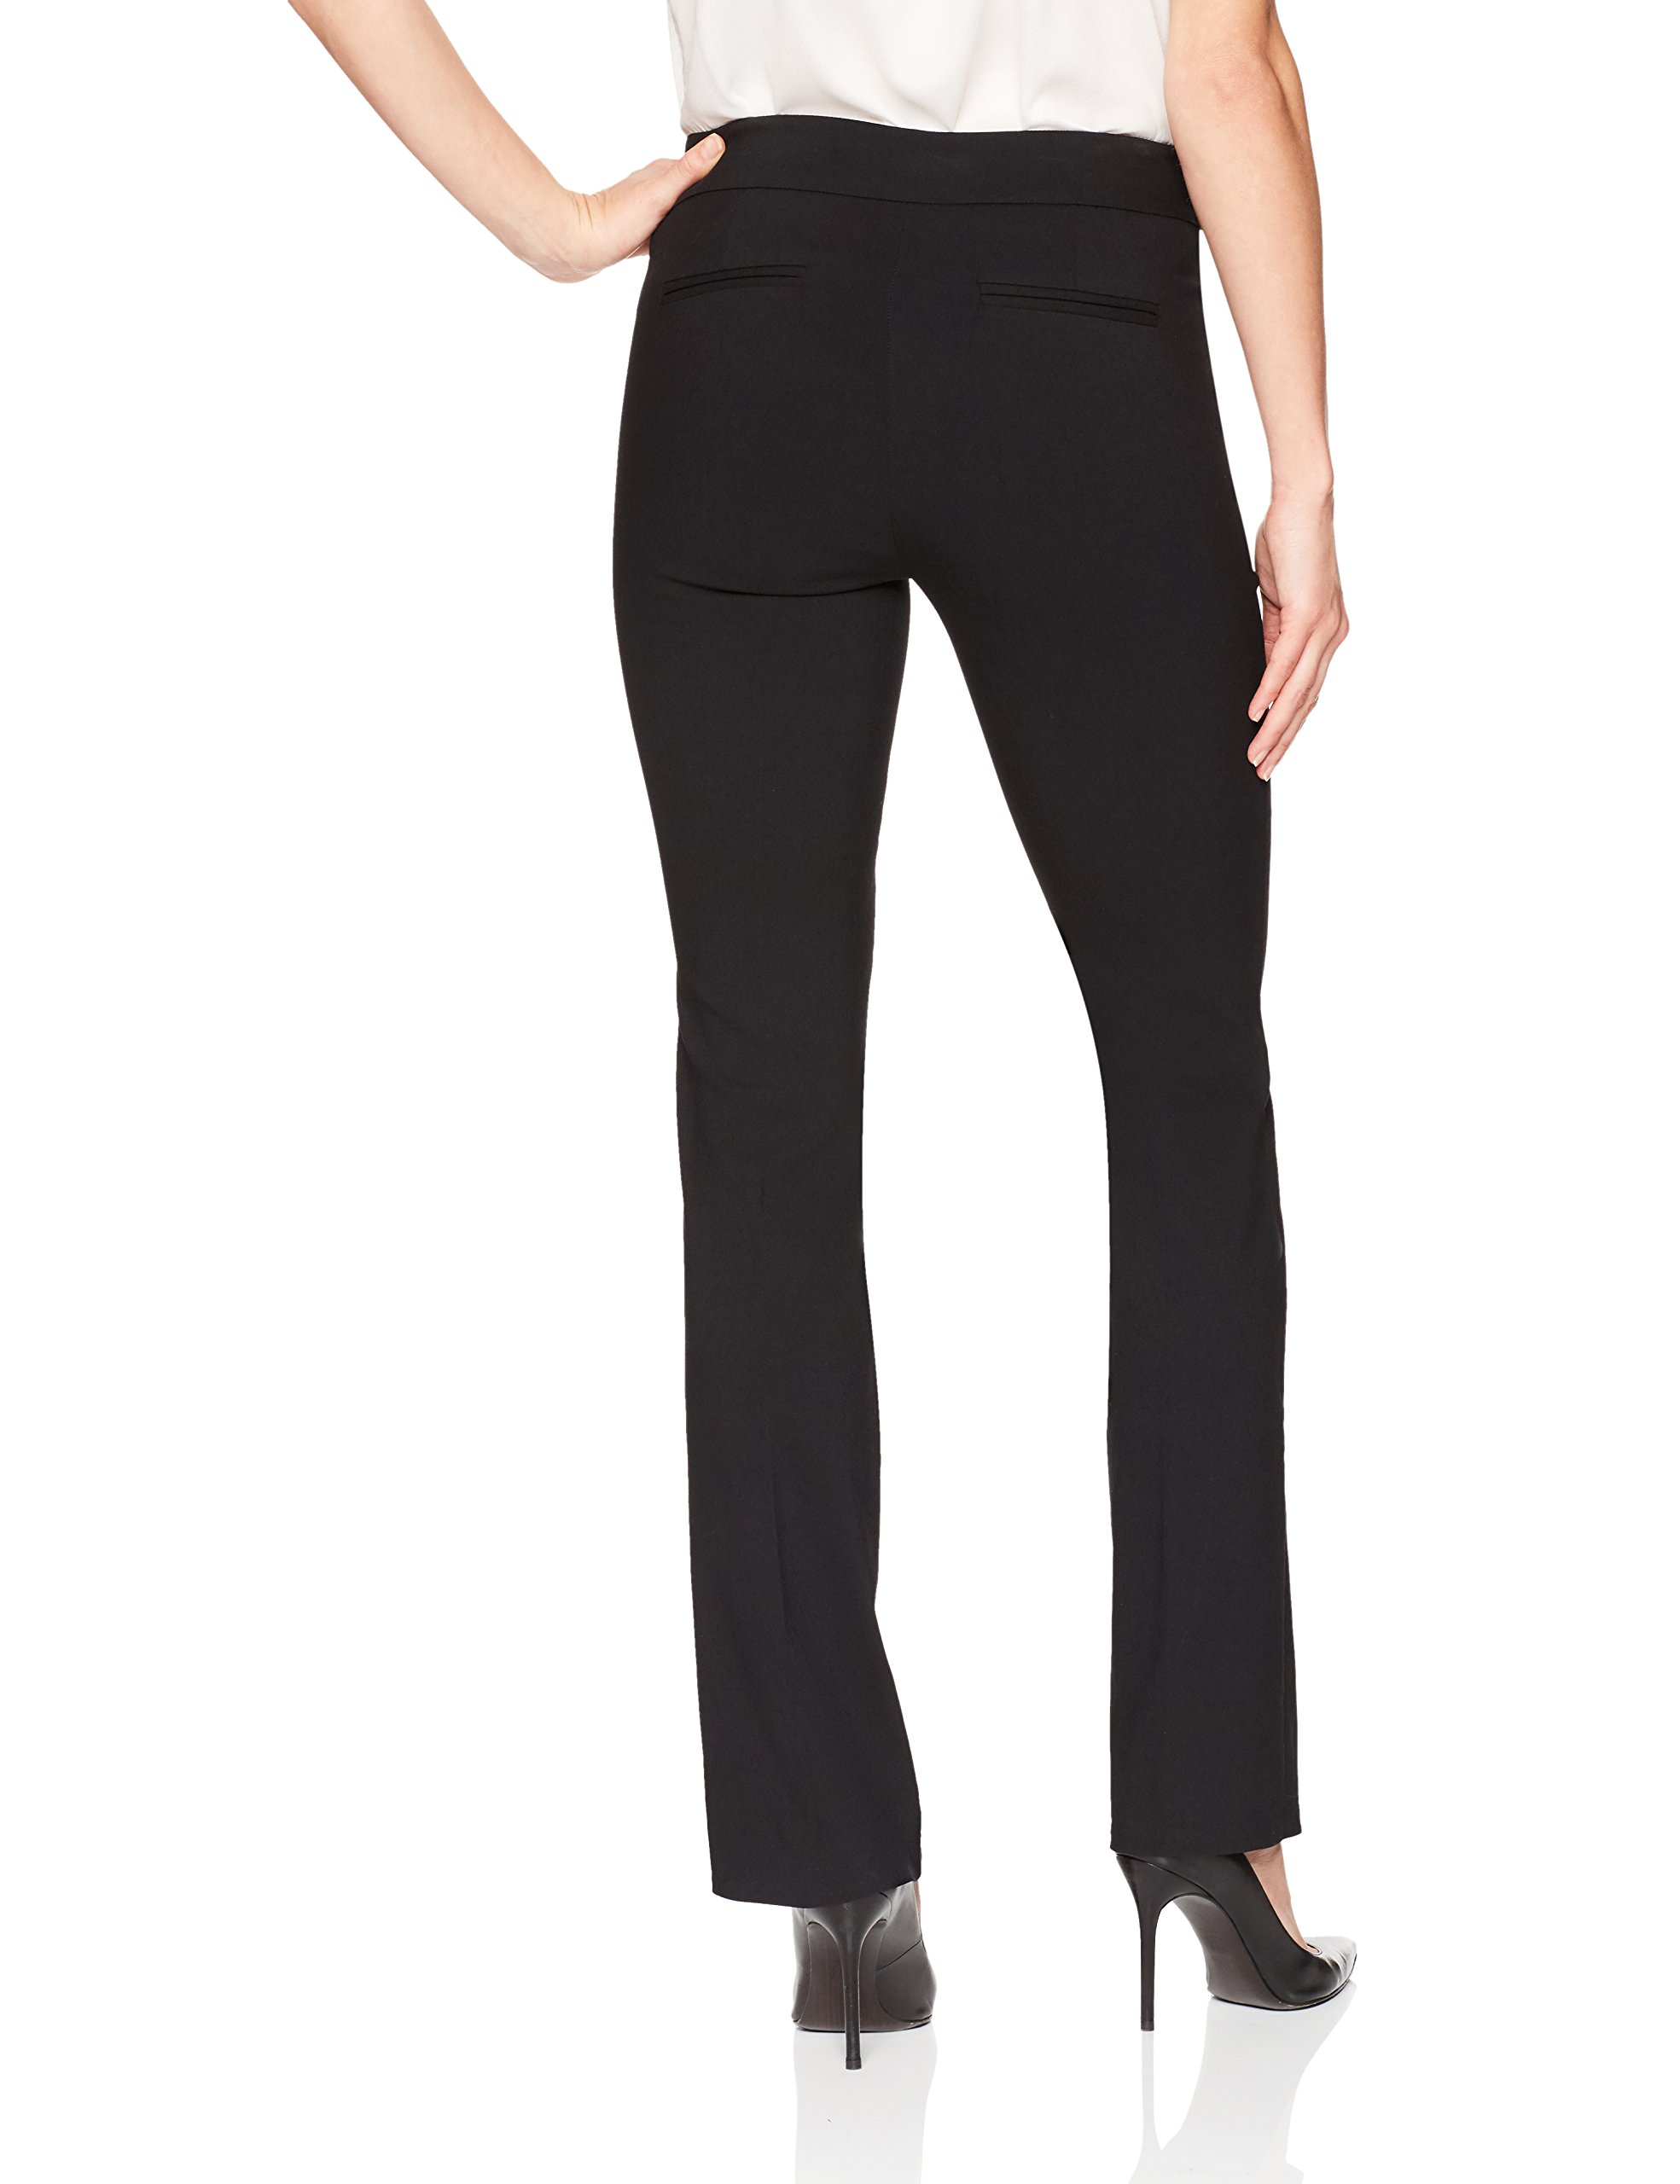 Lark & Ro Women's Barely Bootcut Stretch Pant: Comfort Fit, Black, 16 by Lark & Ro (Image #3)